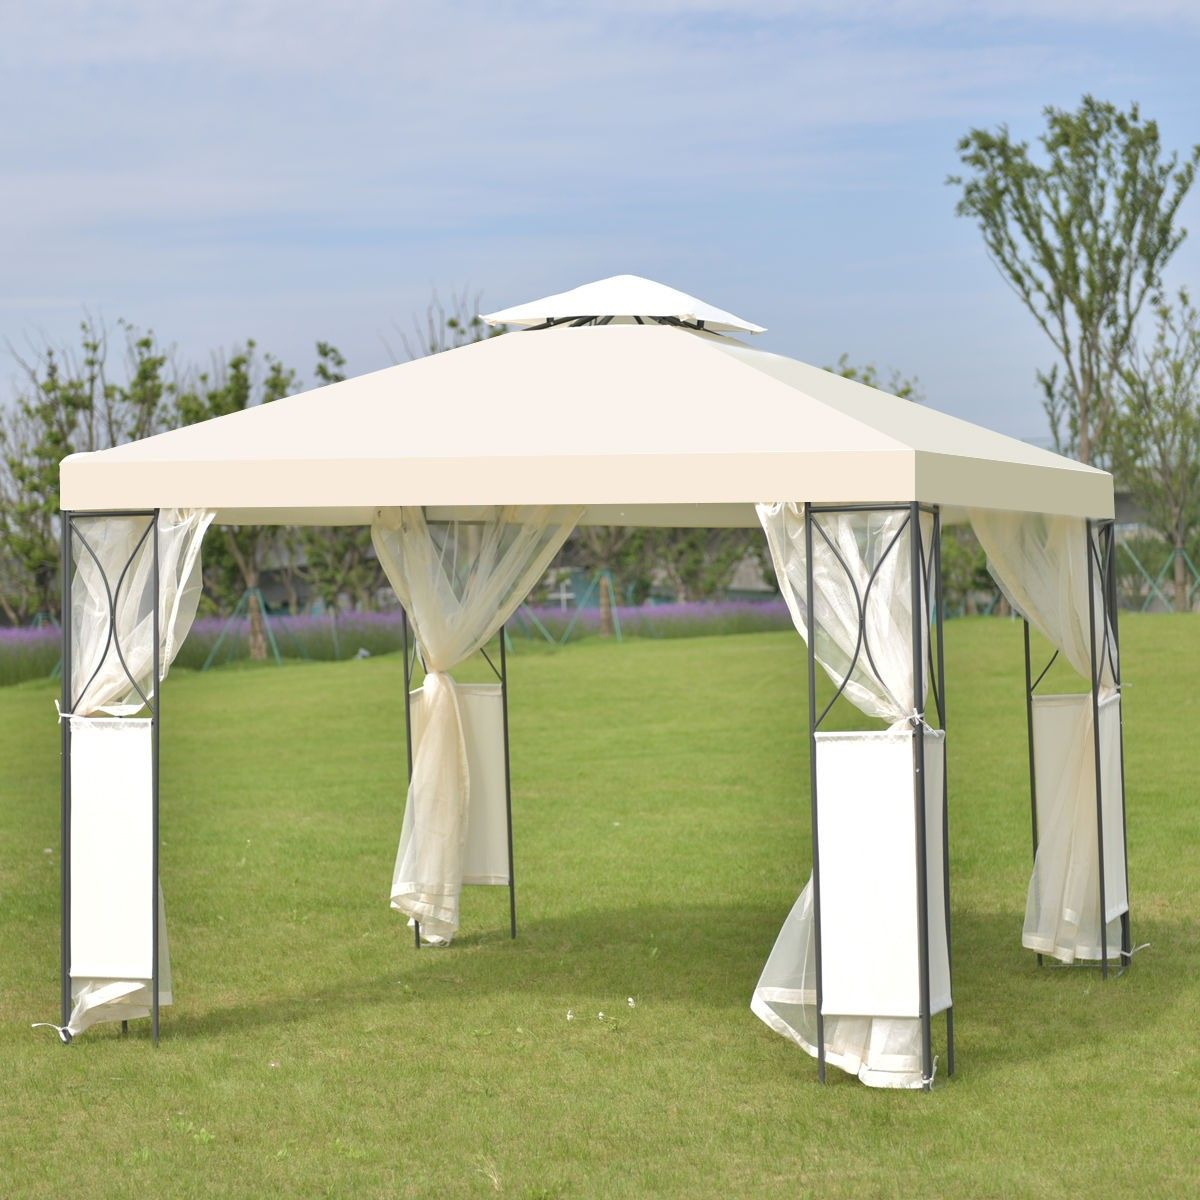 2 Tier 10 X 10 Patio Steel Gazebo Canopy Shelter 144 95 Free Shipping Material Steel And 180g Waterproof Polyester Gazebo Tent Gazebo Canopy Steel Gazebo